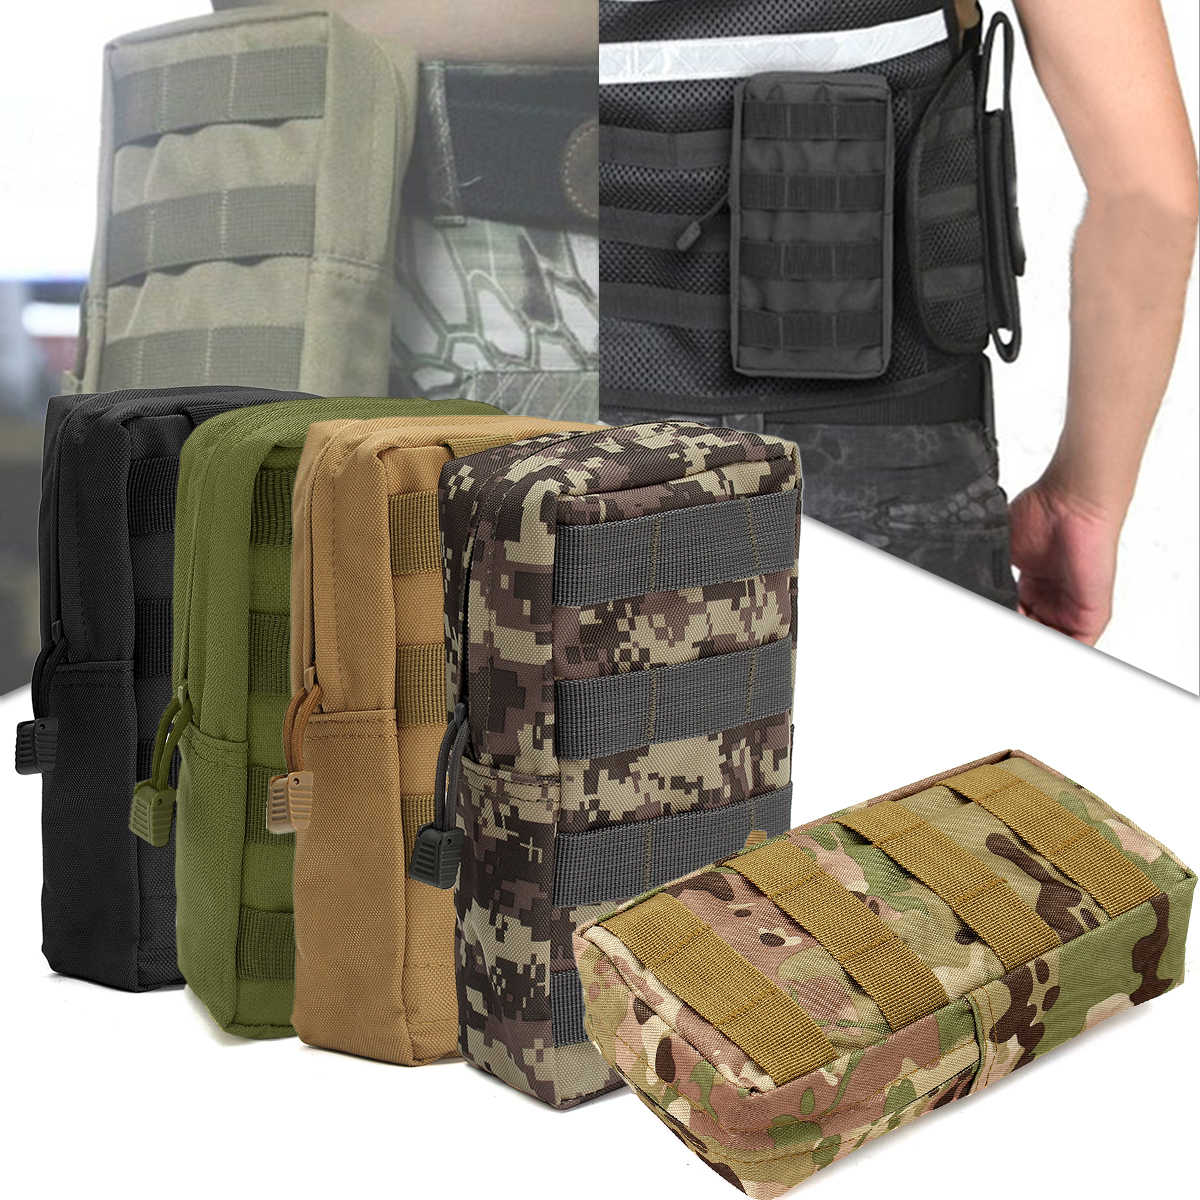 Trustful Wholesale Outdoor Waterproof Travel First Aid Kits Oxford Cloth Tactical Waist Pack Camping Climbing Bag Black Emergency Case Back To Search Resultssecurity & Protection